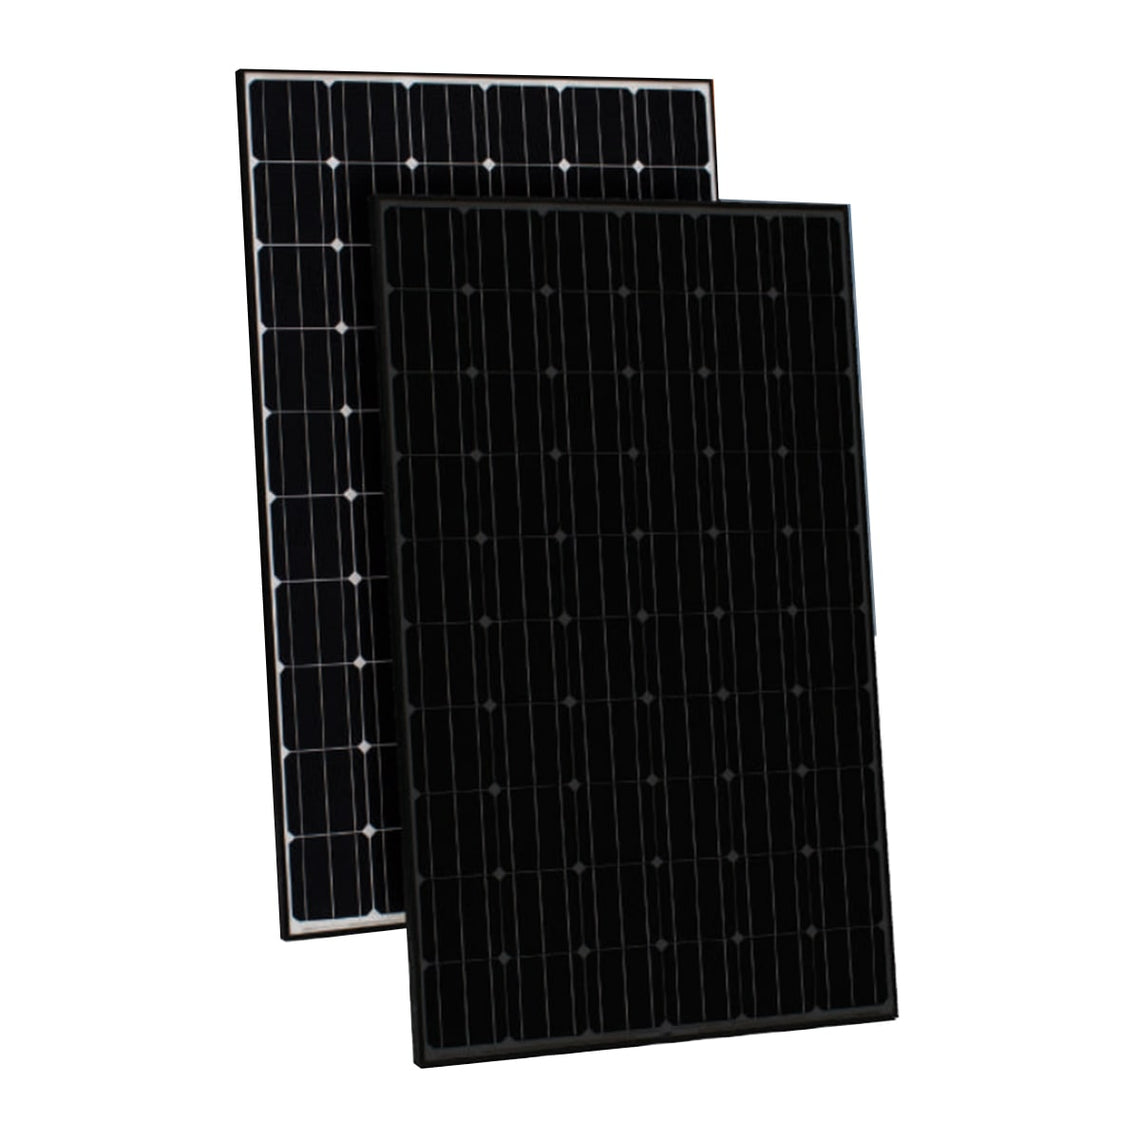 CertainTeed 370W Mono 72 Cell Solar Panel (CT370M11-02)